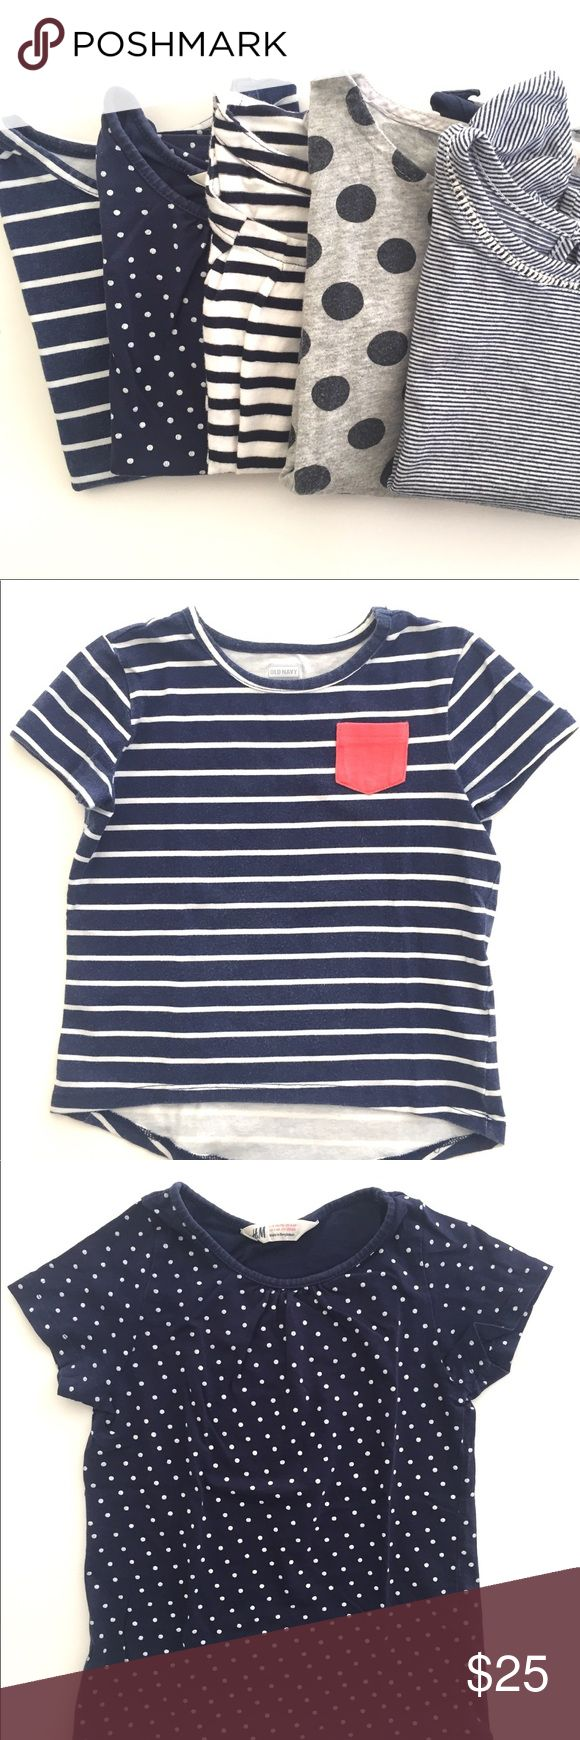 Stripes & Polka Dots Short Sleeve Bundle Adorable bundle of 5 short-sleeves. All pre-loved and gently worn. 100% cotton. Machine wash. Pet-free & smoke free home.  ♦️ Old Navy Hi-Lo Stripe w/ pink pocket (5T) ♦️ H&M Organic Navy w/ white Polka Dots (4-6T) ♦️ Crewcuts Polka Dot w/ front pocket (5T) ♦️ Gap Navy Blue Stripe (4-5T) ♦️ Old Navy Pinstripe w/ flutter sleeves (5T)  Hope you enjoy! J. Crew Shirts & Tops Tees - Short Sleeve